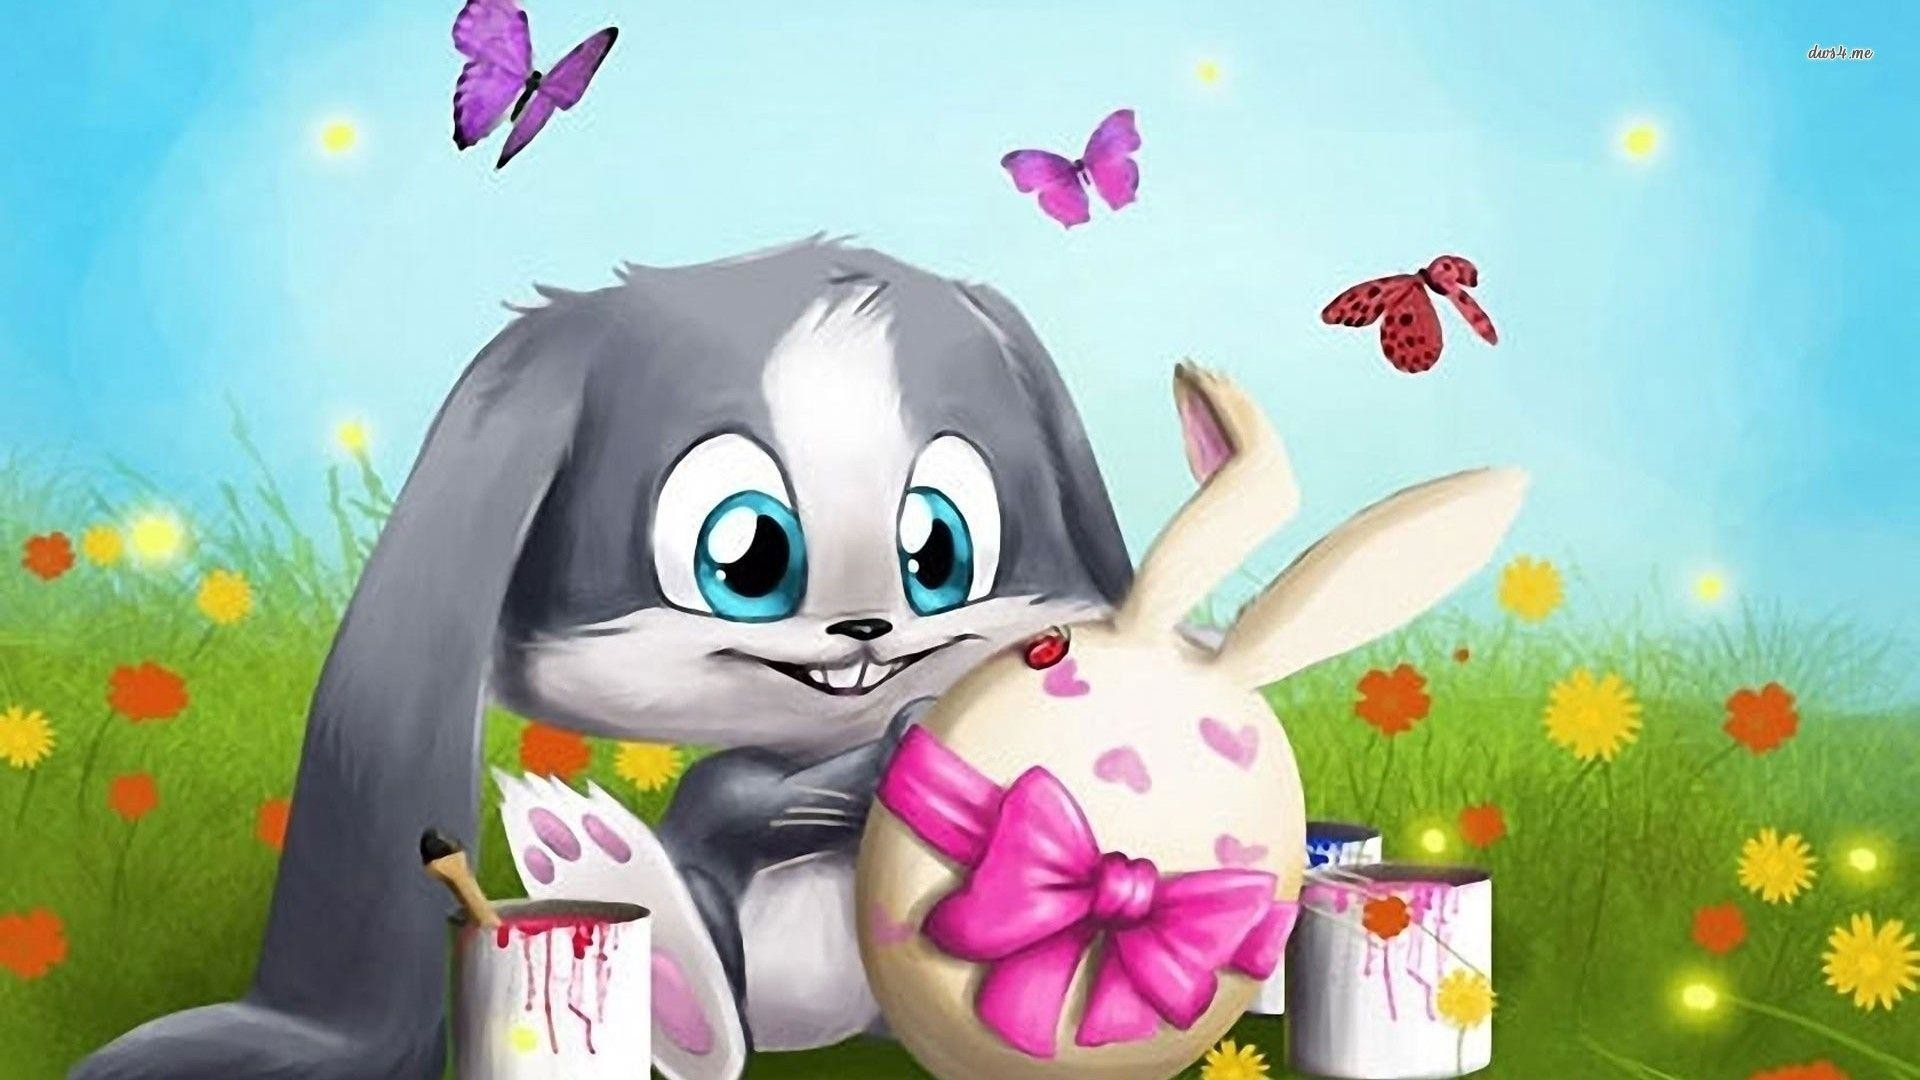 1920x1080 Wallpapers For > Easter Bunny Wallpaper Backgrounds